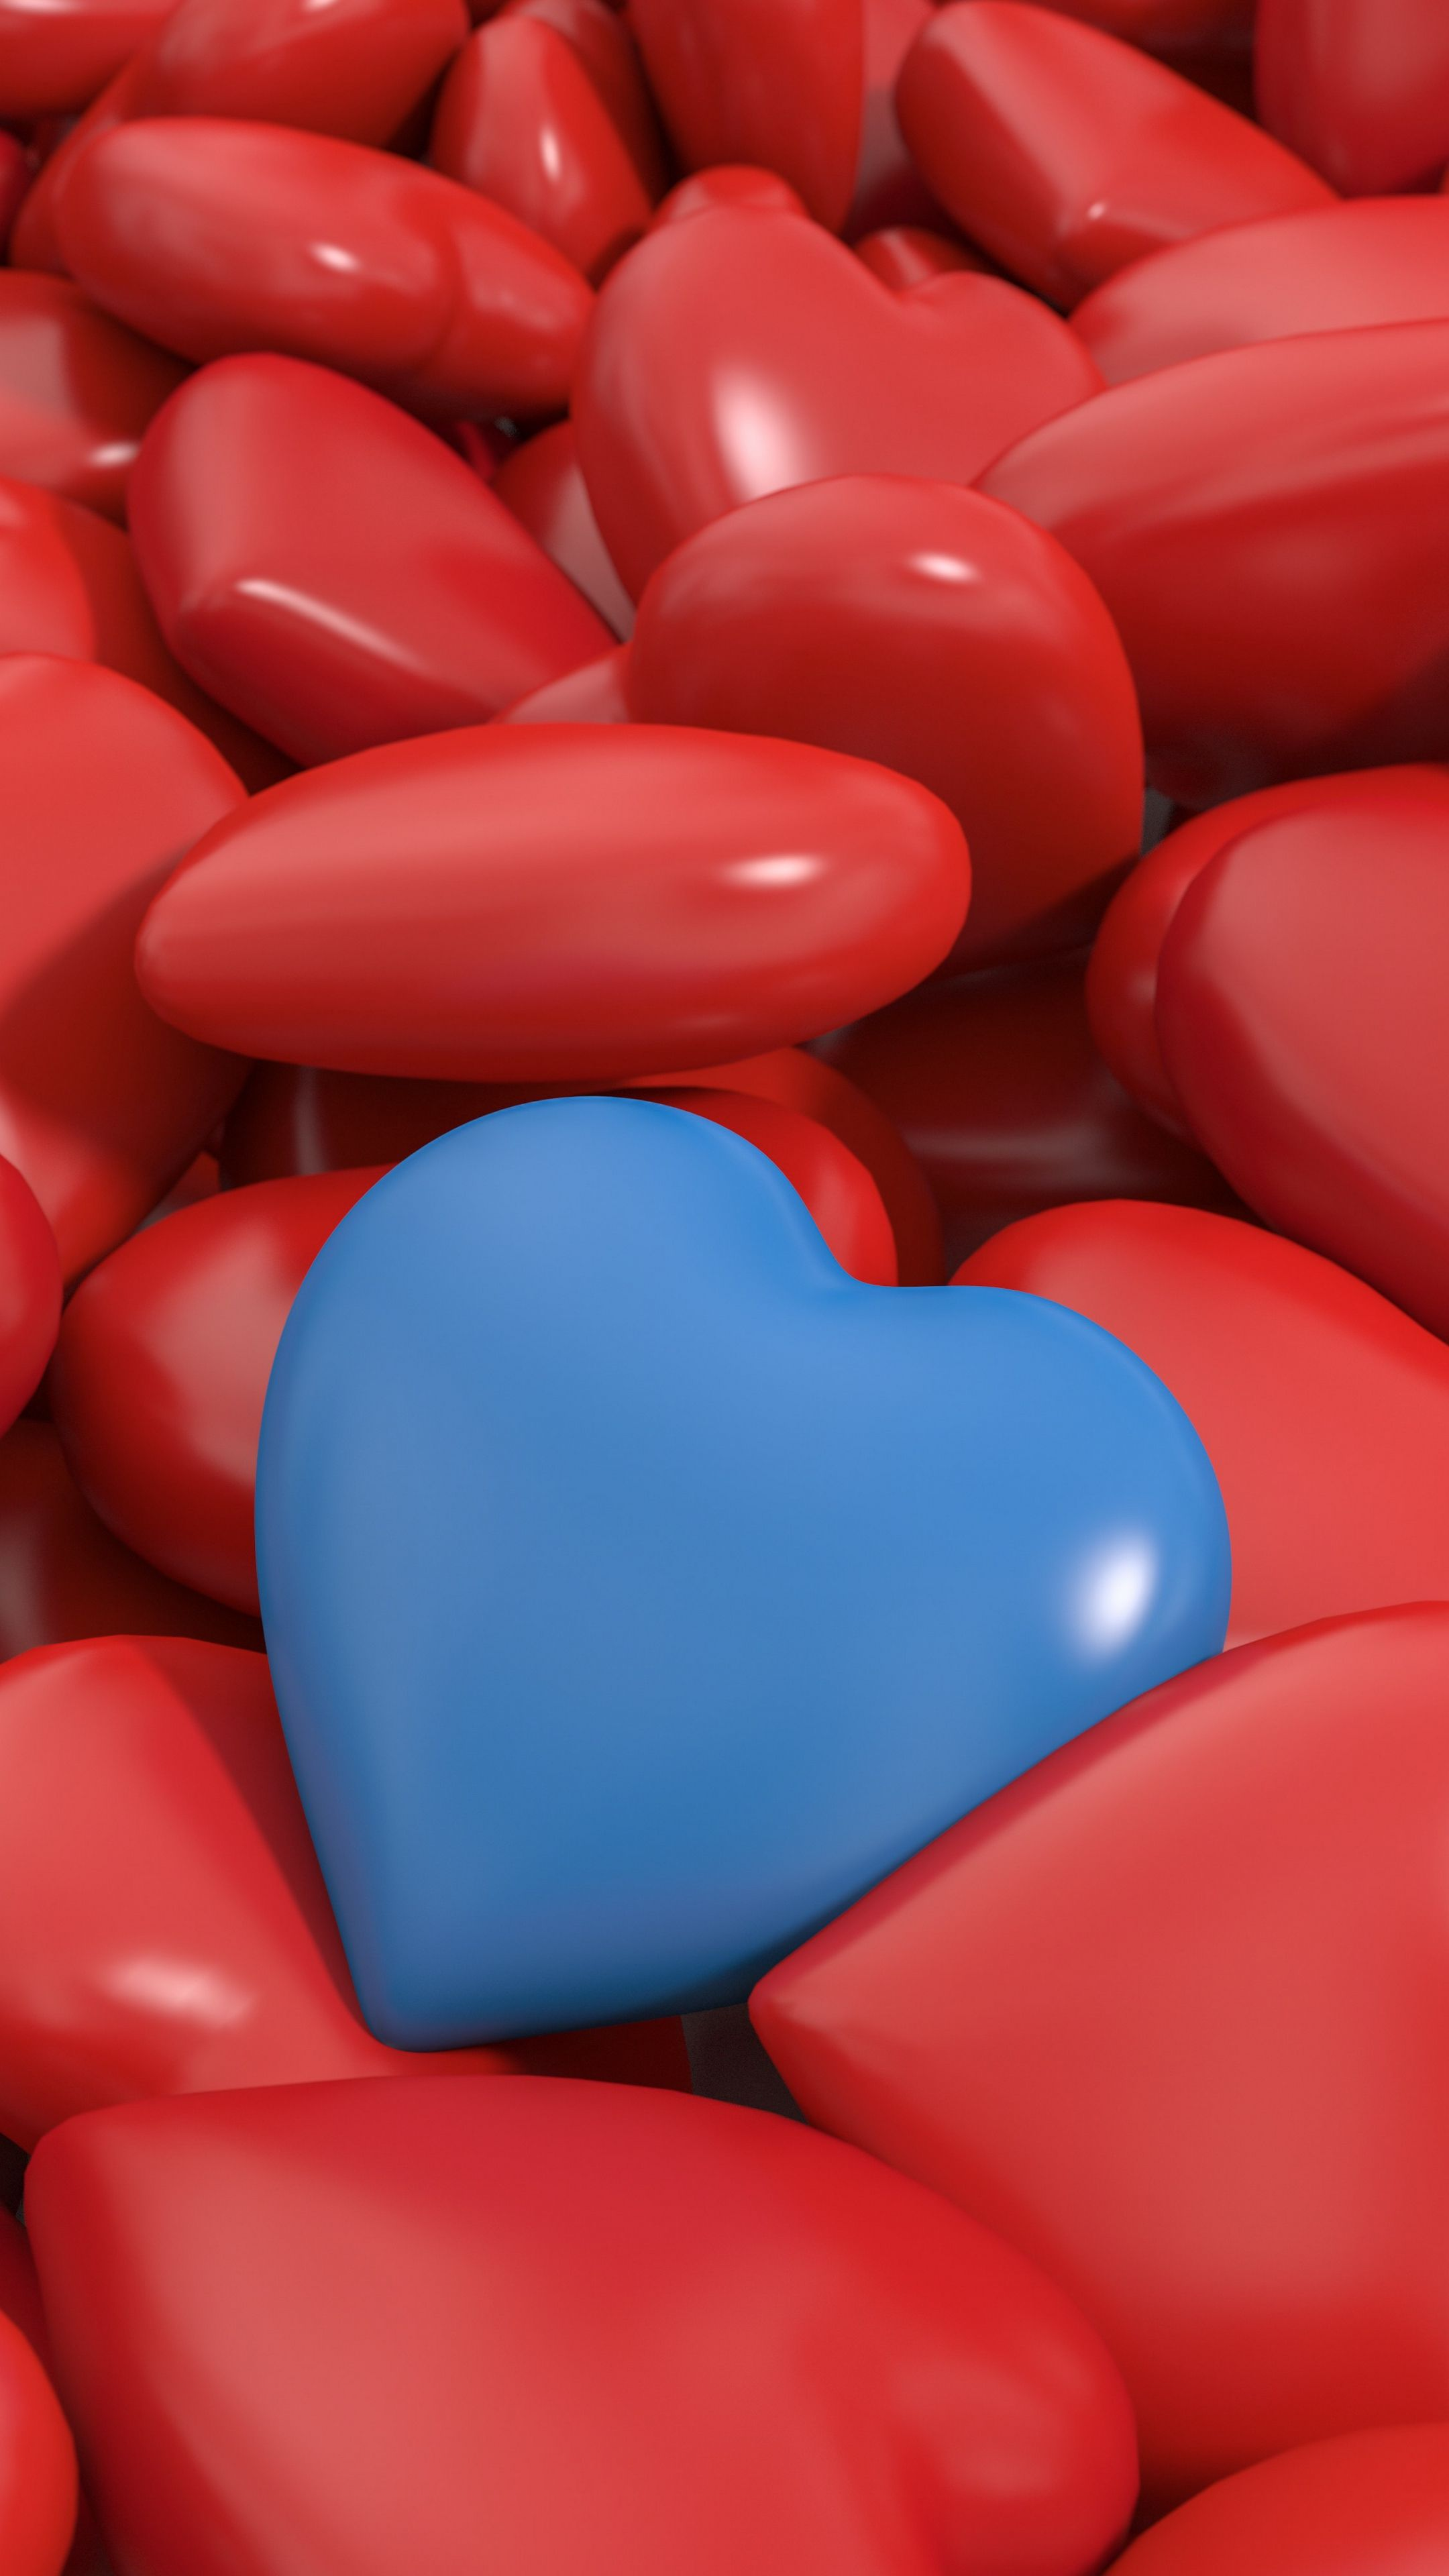 10 107670 emotions heart red blue 3d wallpapers hd 4k